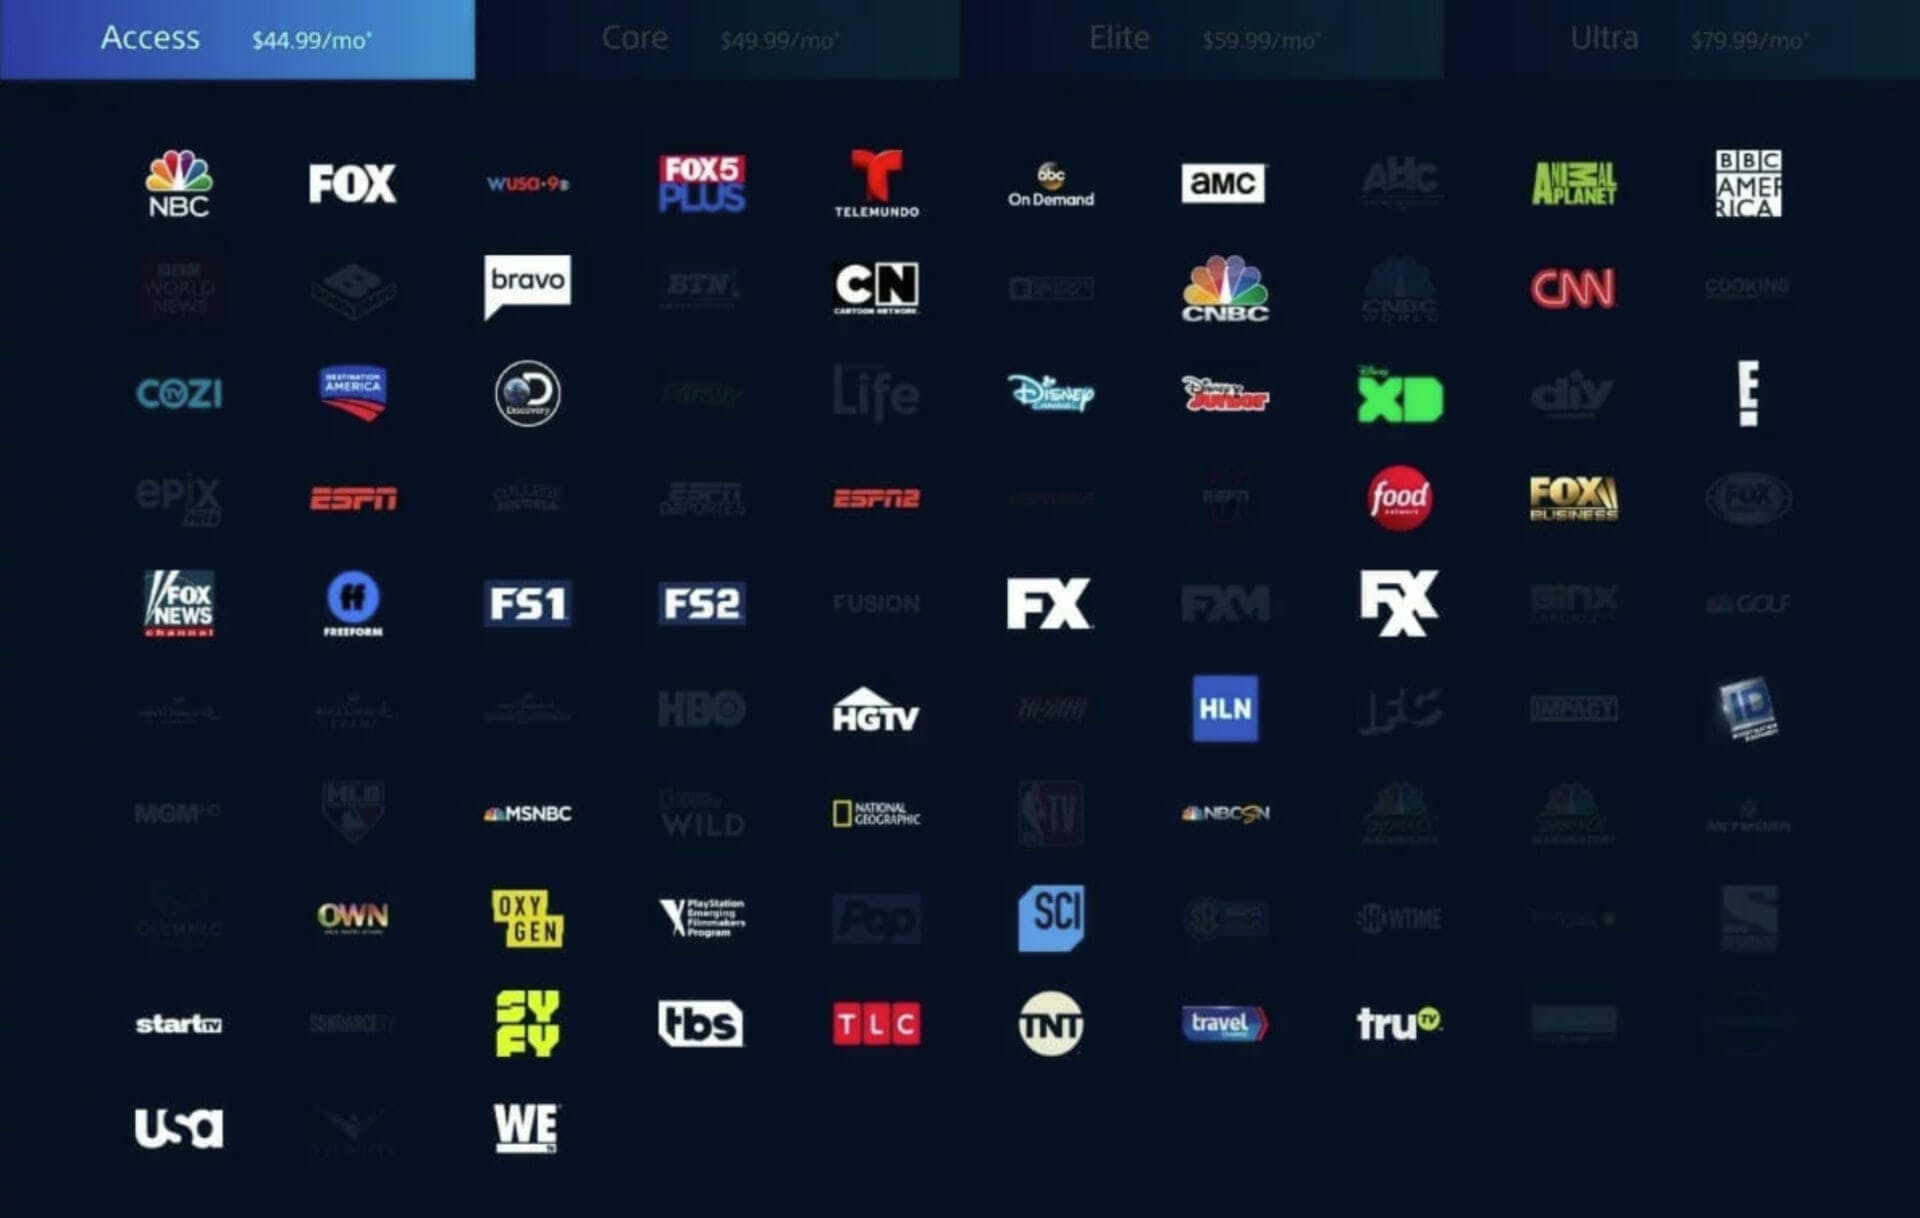 chiefs colts playstation vue nfl streaming afc